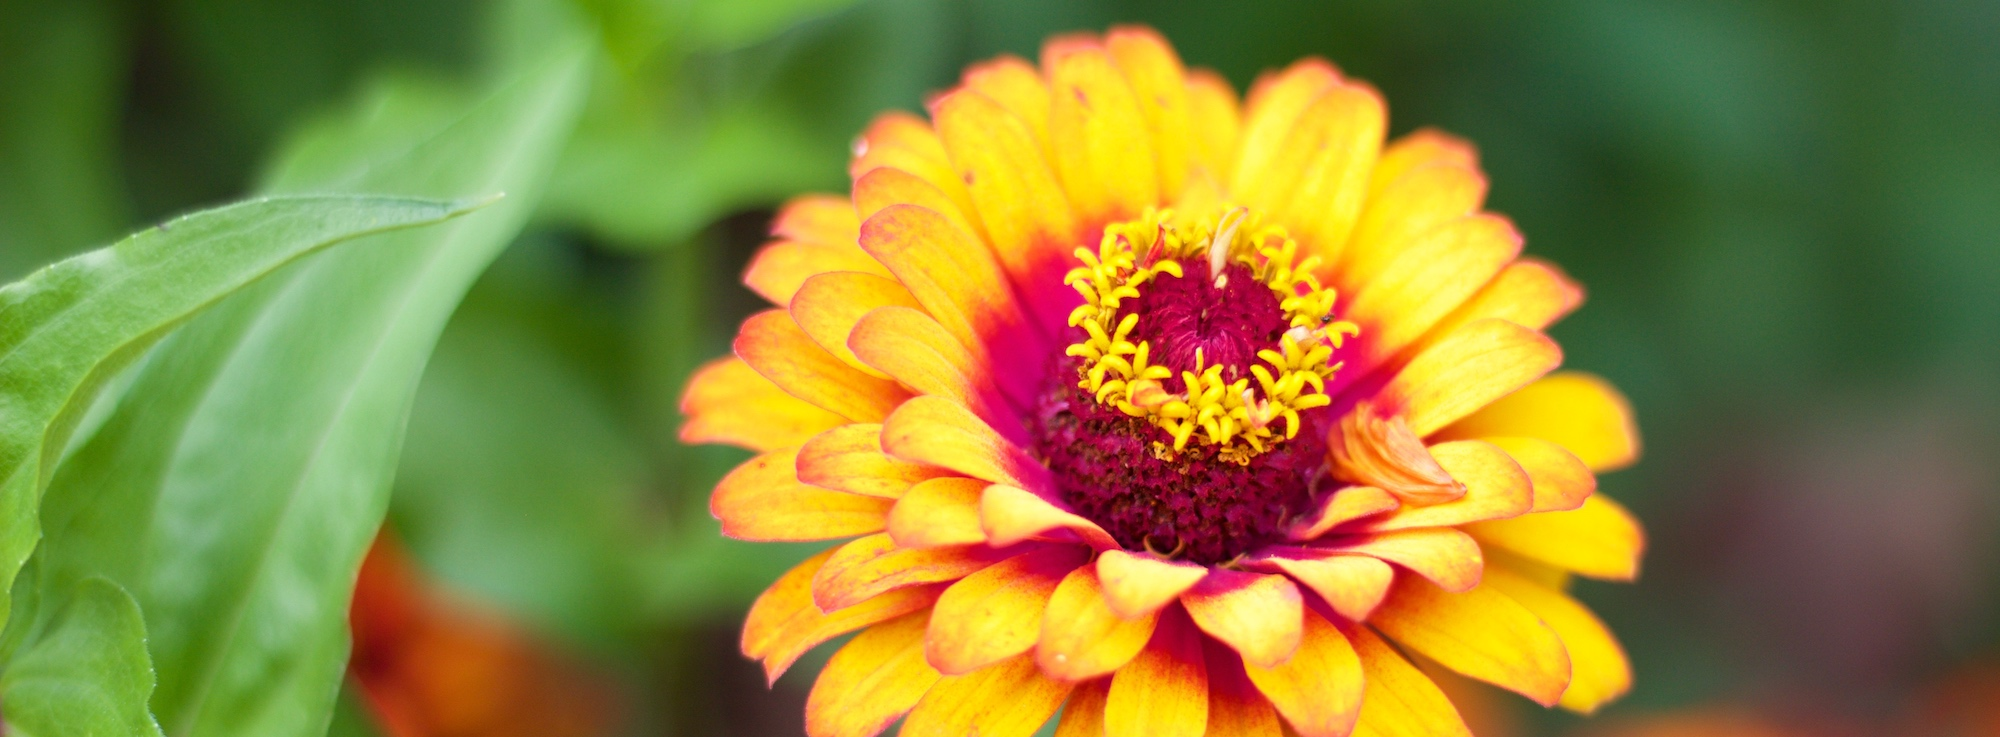 a close up view on an orange zinnia bloom